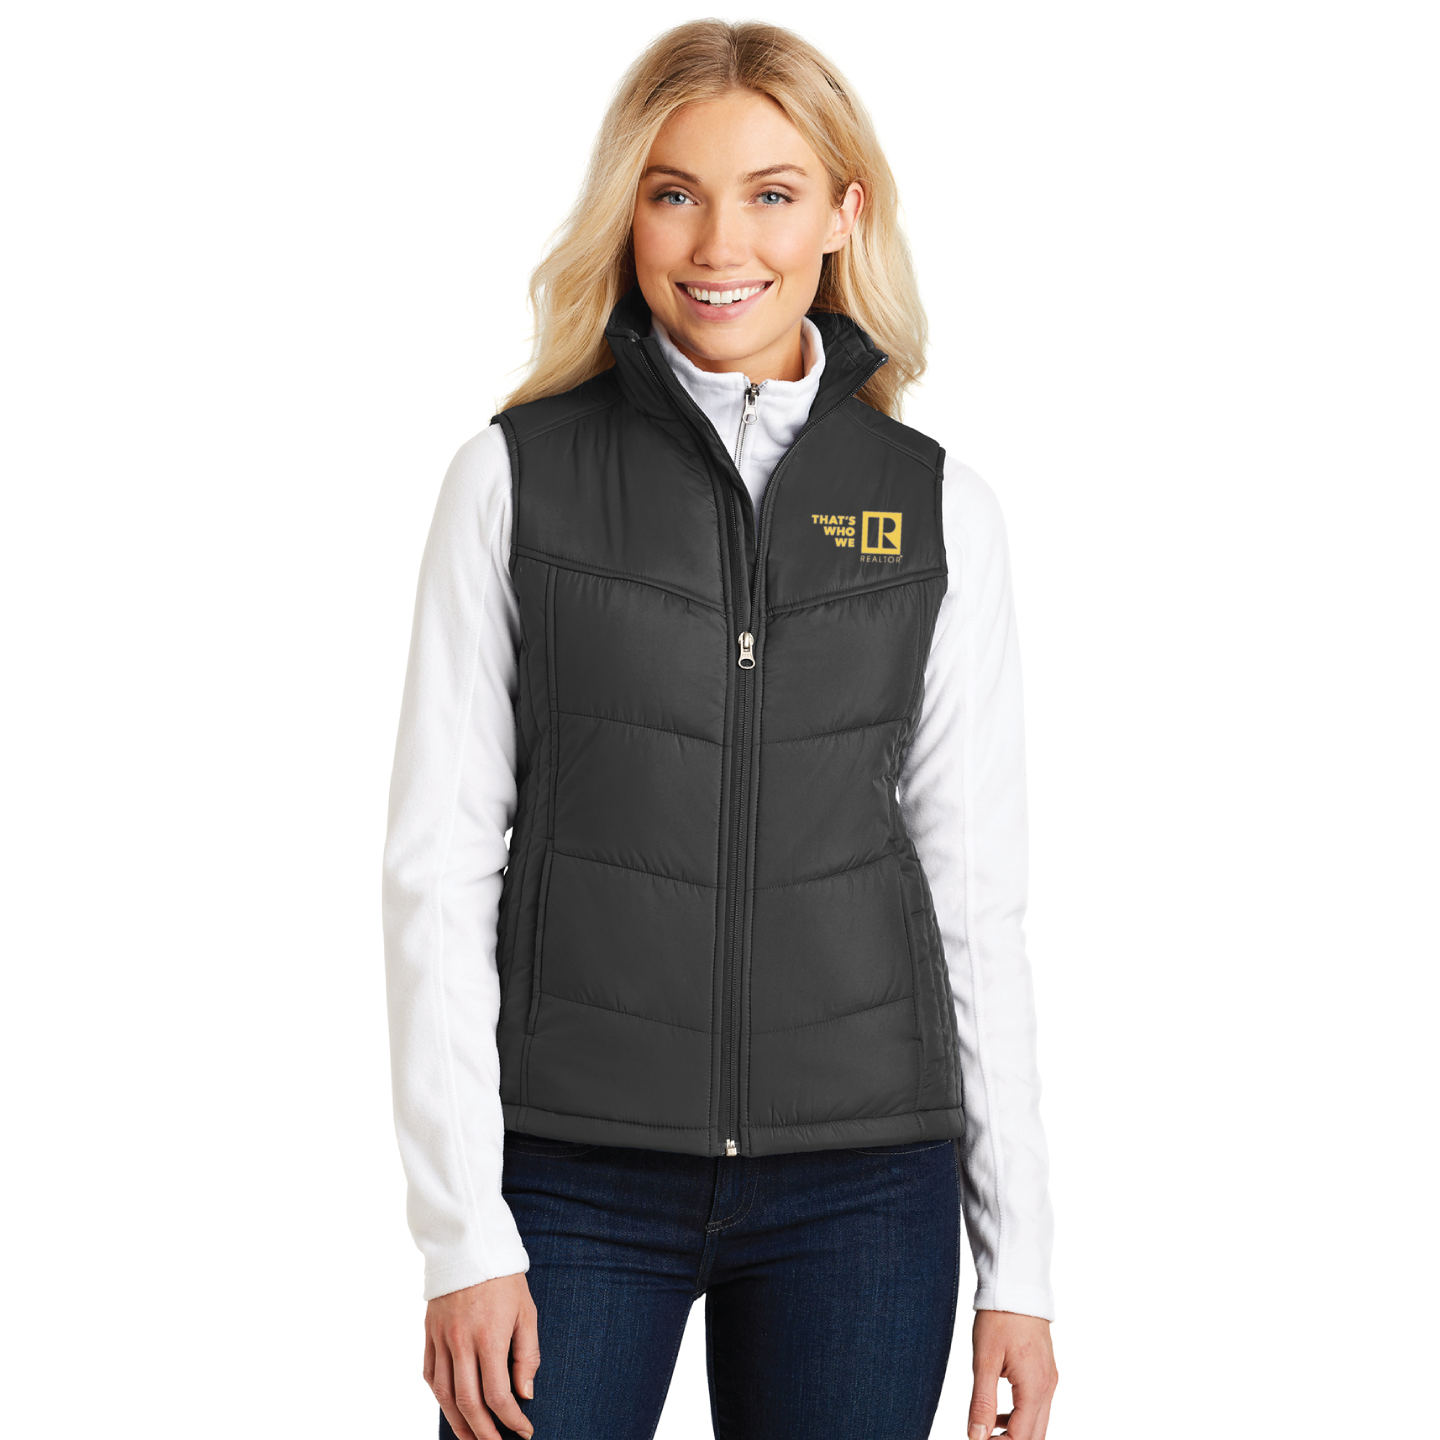 """That's Who We R"" Ladies Puffy Vest twwr,ThatsWhoWeR,That's,TWWR,ThatWho,That'sWho,Twwr,Thats,Whos,We,Ares,Twwr,Thats,Whos,Wes,Ares,ladies,vests,Puffy,fluffy,winter,cold,fall,conference"